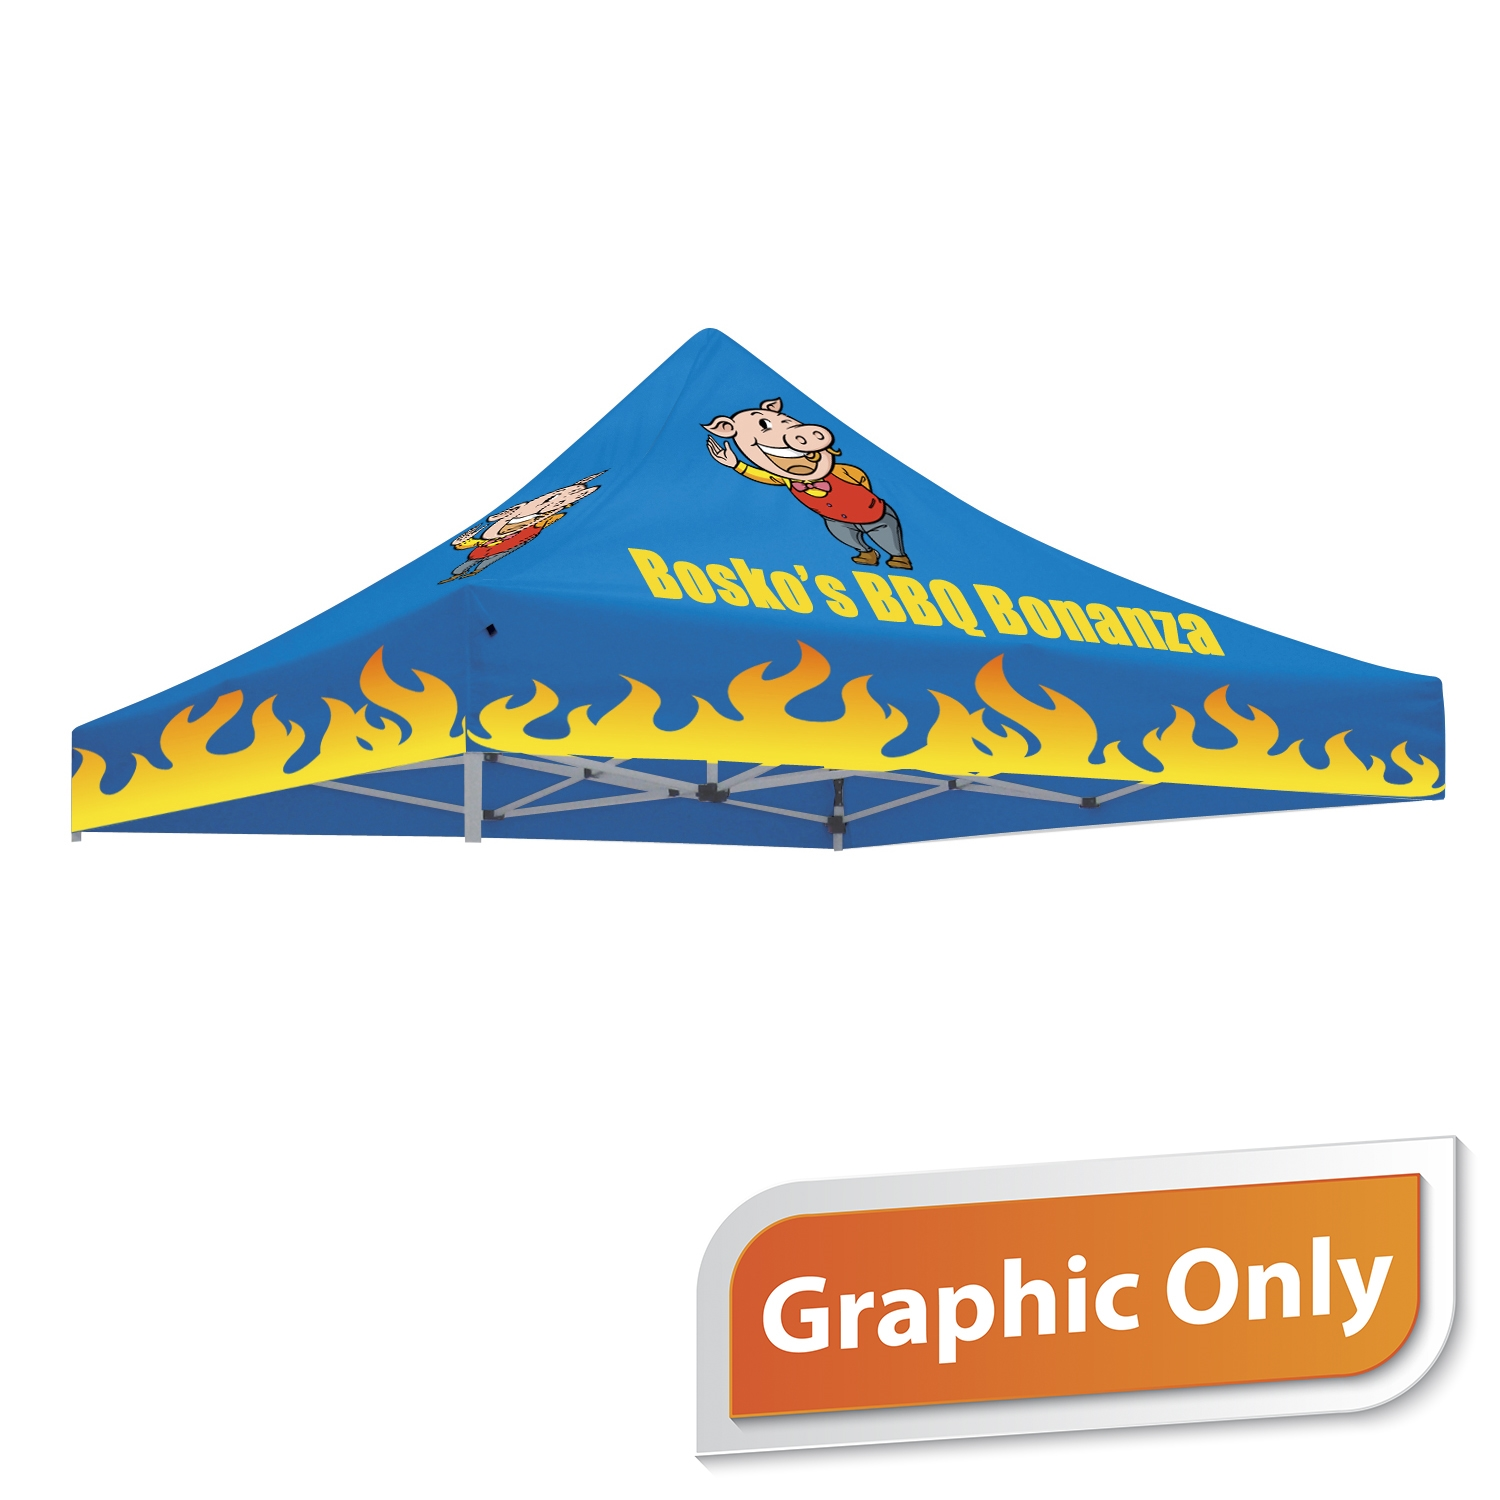 10' x 10' Tent Canopy - Full Color Graphic Only